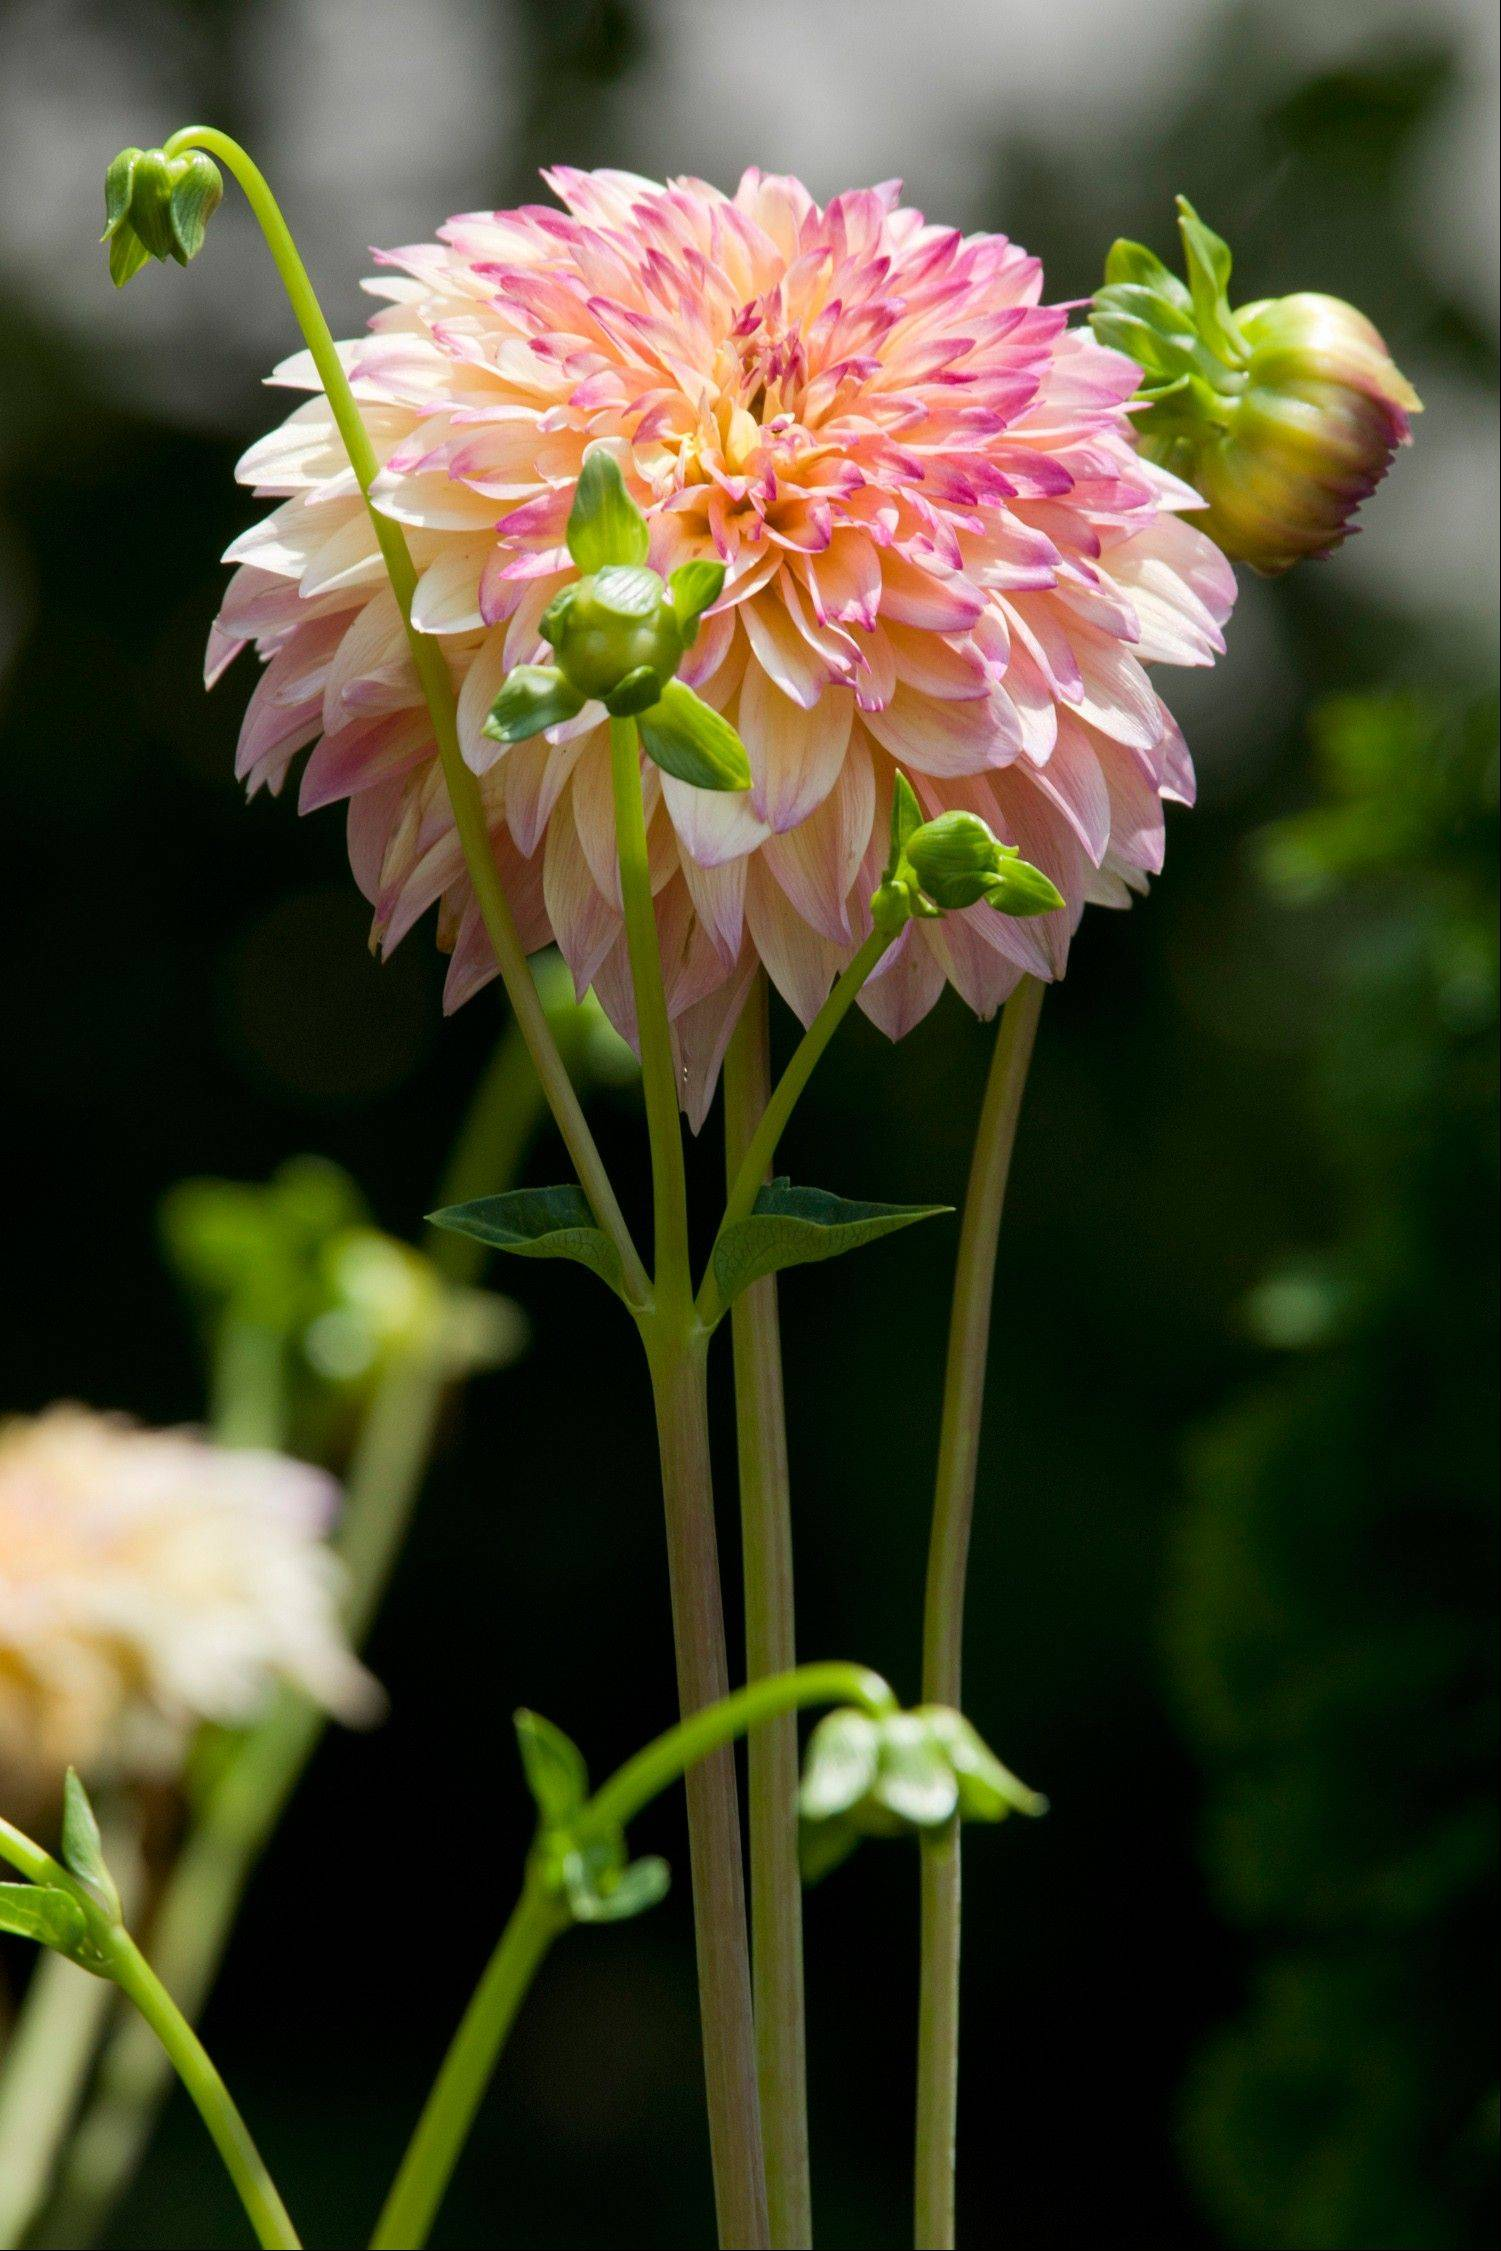 To maximize the size of your dahlia flowers, keep only the top flower on a stem and remove all side shoots.